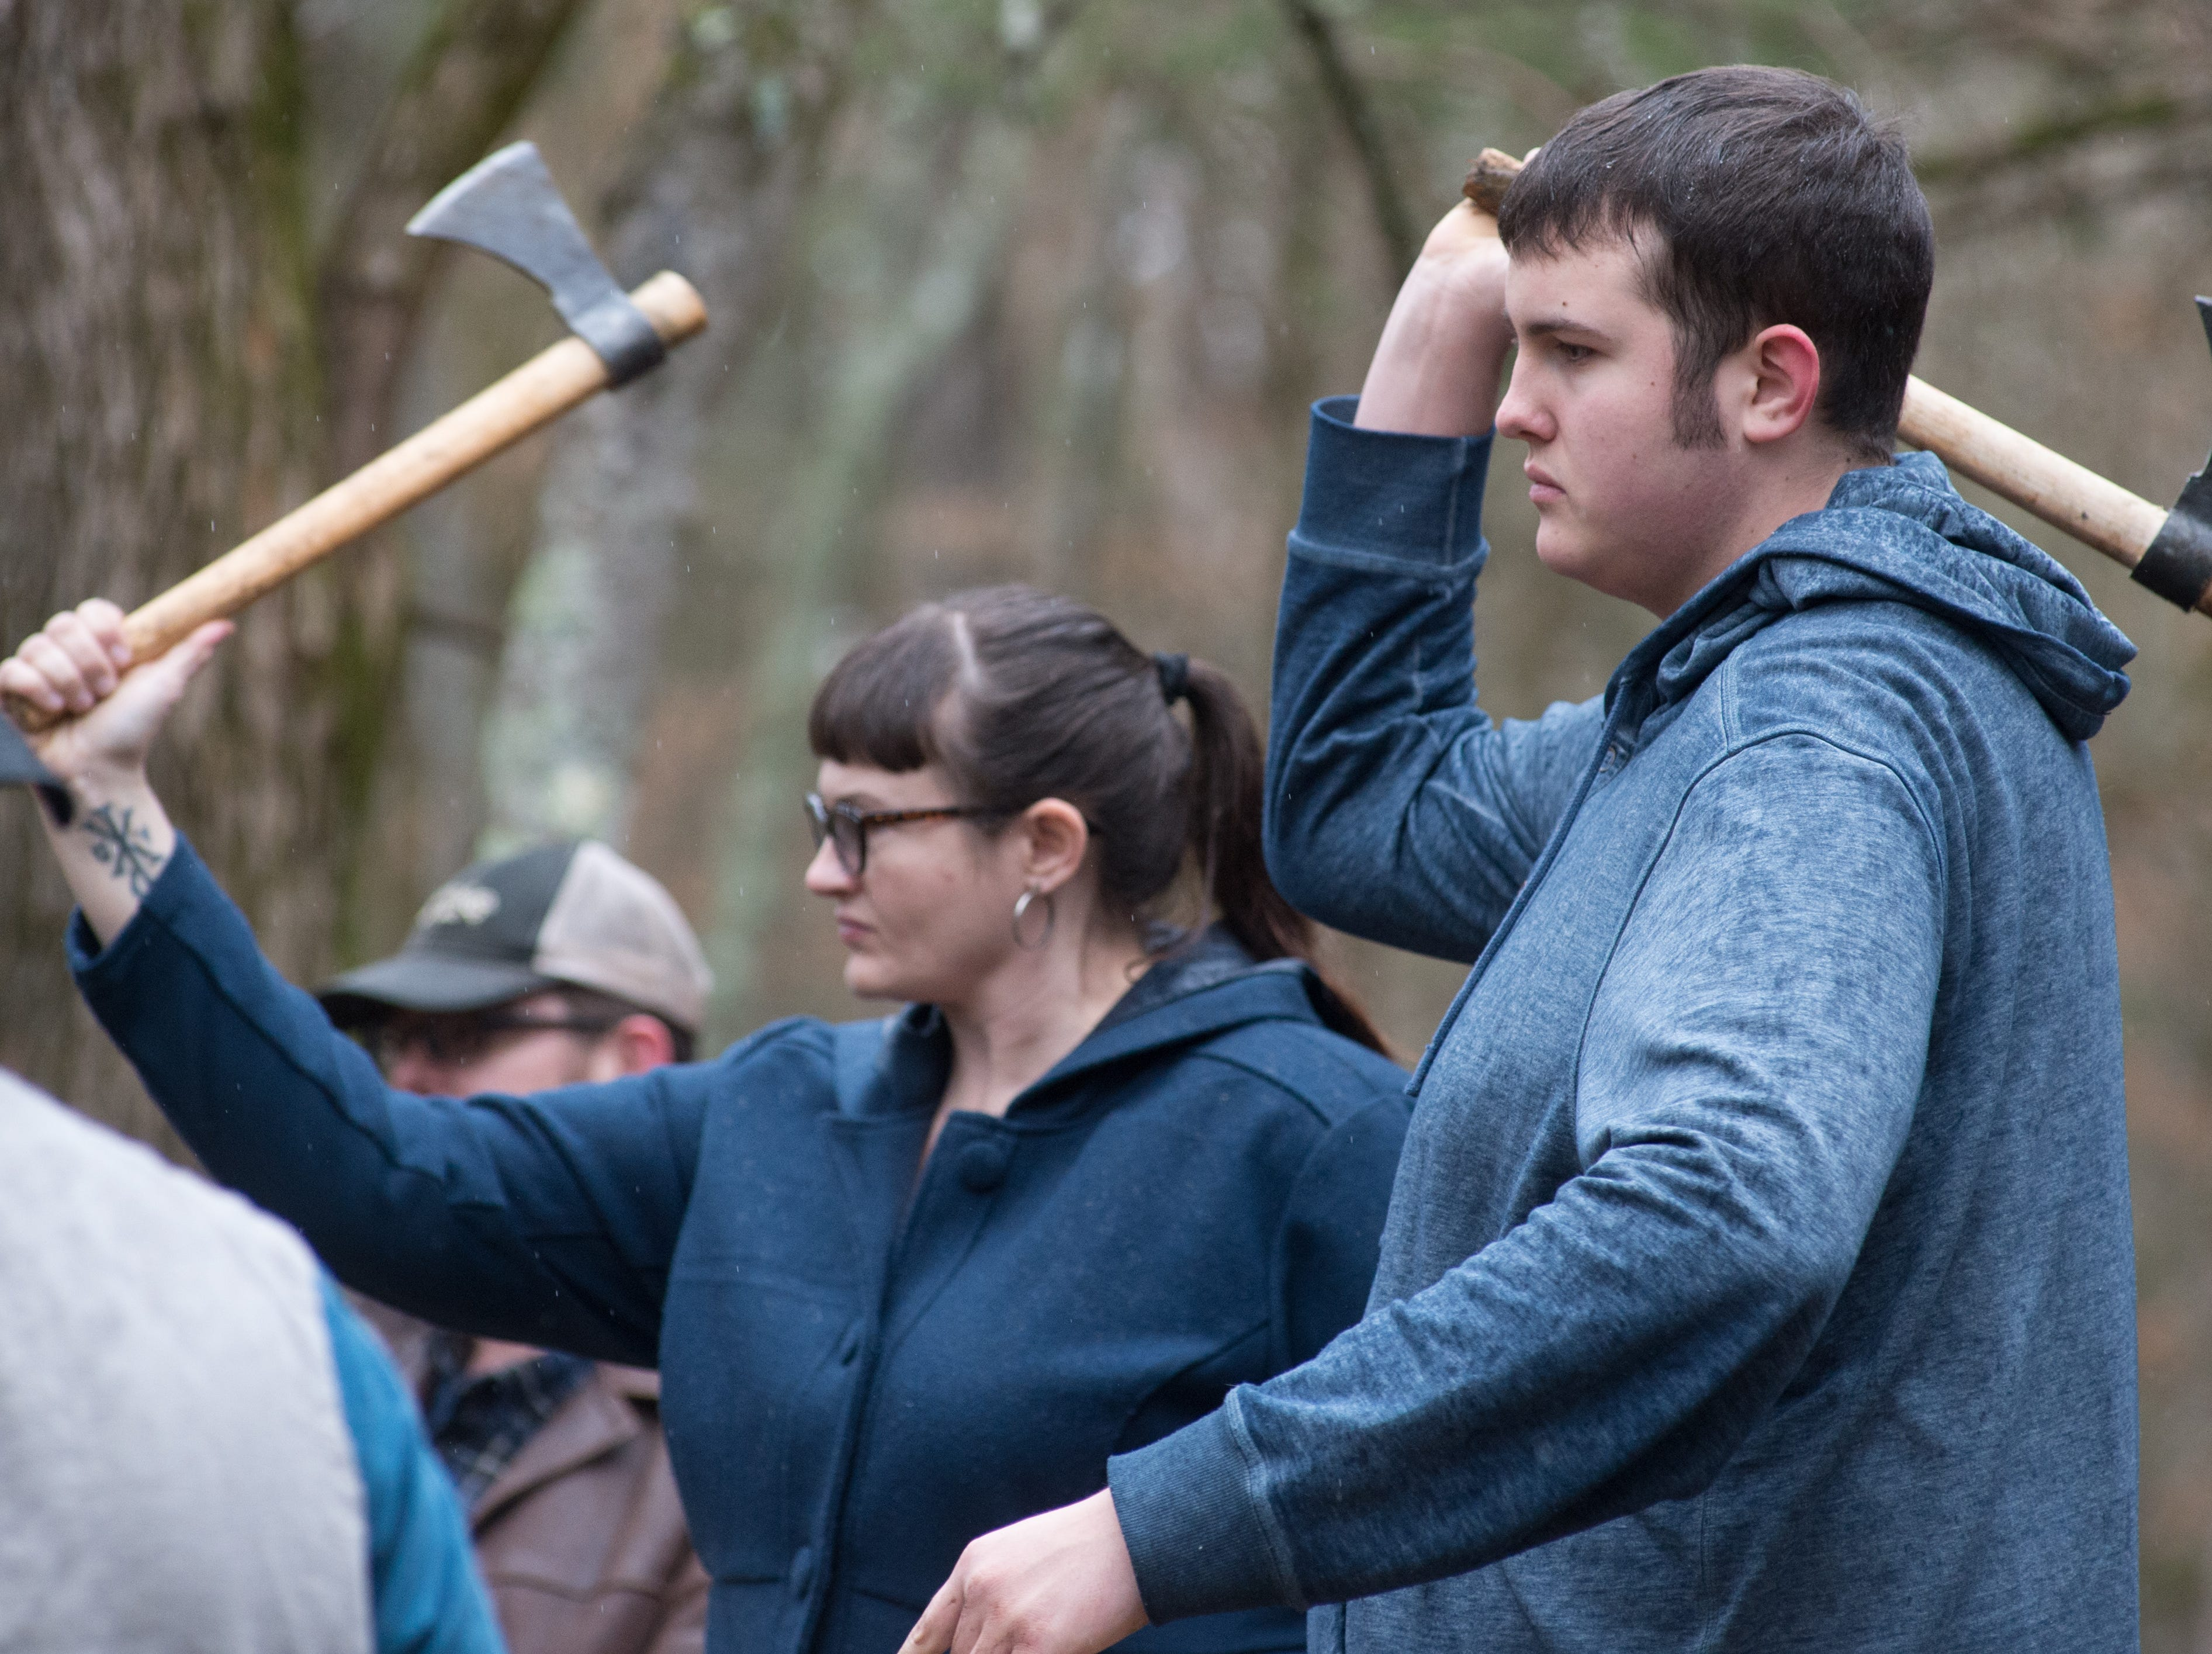 The rain didn't stop attendees from participating in a Tomahawk Throwing for Beginners event hosted by Middle Tennessee History Coalition at Bledsoe Creek State Park on Saturday, Jan. 12.